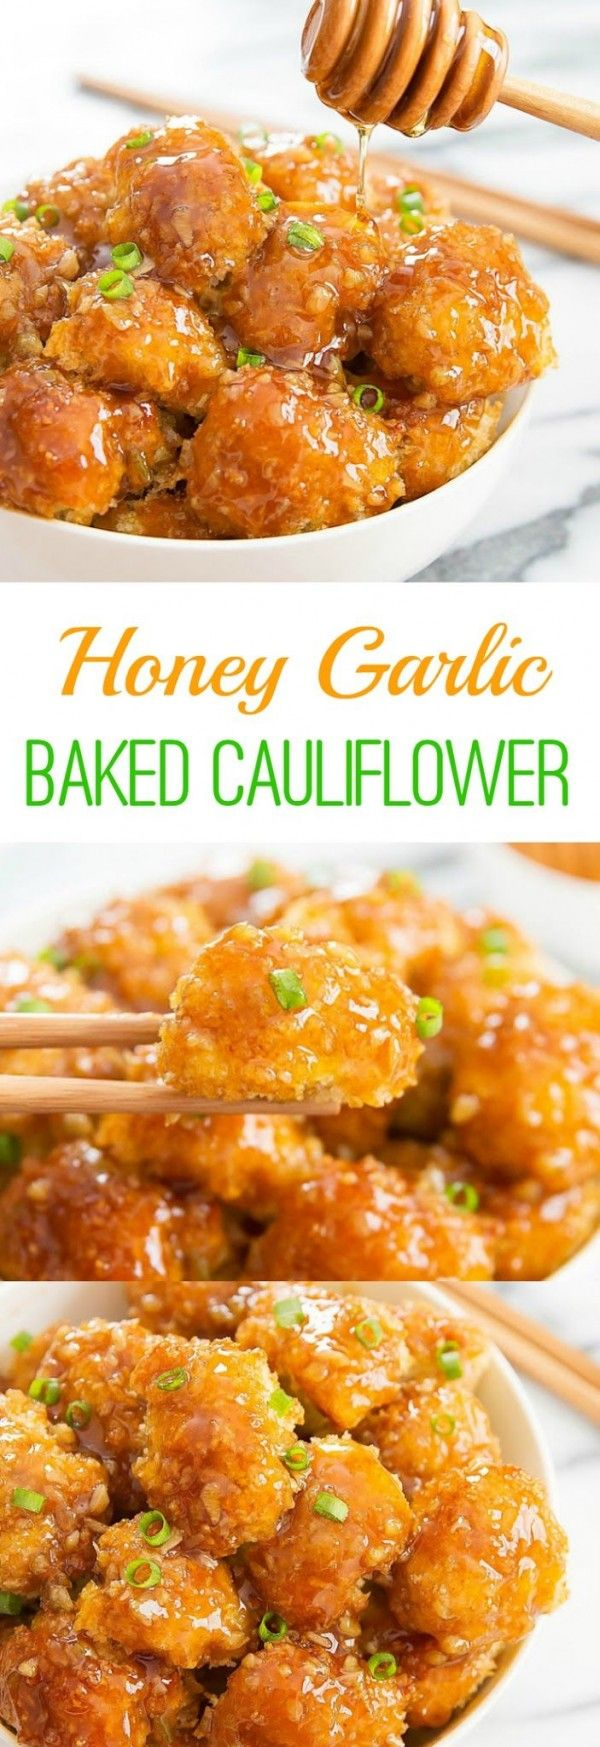 Get the recipe ♥ Honey Garlic Baked Cauliflower @recipes_to_go